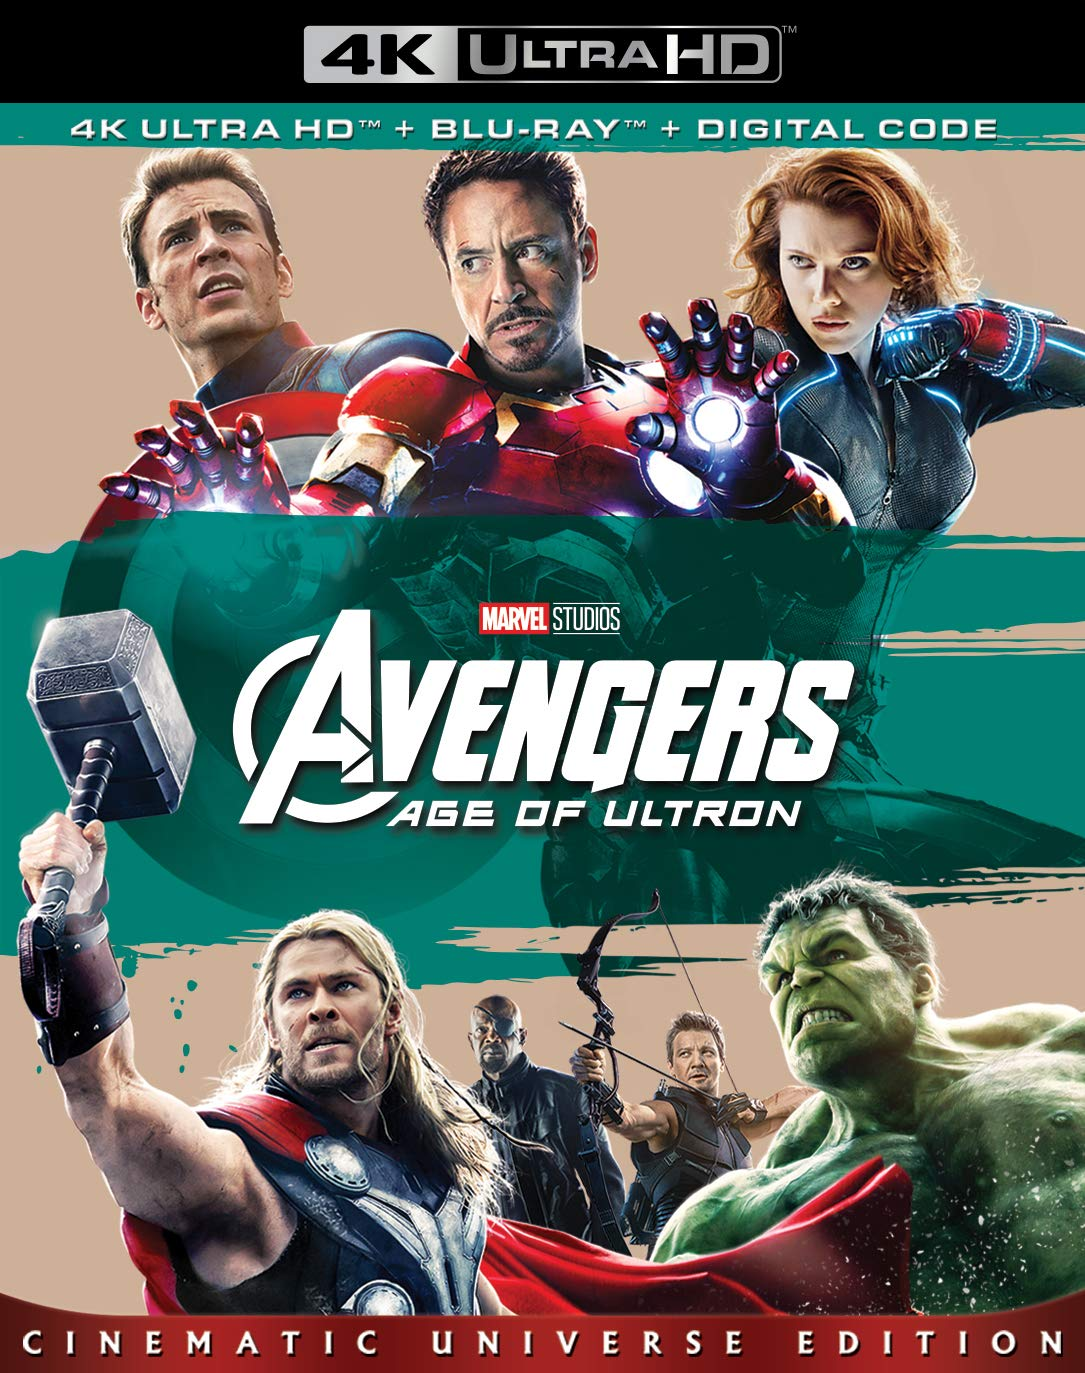 Avengers: Age of Ultron [USA] [Blu-ray]: Amazon.es: Downey, Robert, Jr., Hemsworth, Chris, Ruffalo, Mark, Evans, Chris, Renner, Jeremy, Johansson, Scarlett, Jackson, Samuel L., Olsen, Elizabeth, Whedon, Joss, Spader, James, Downey, Robert, Jr.,